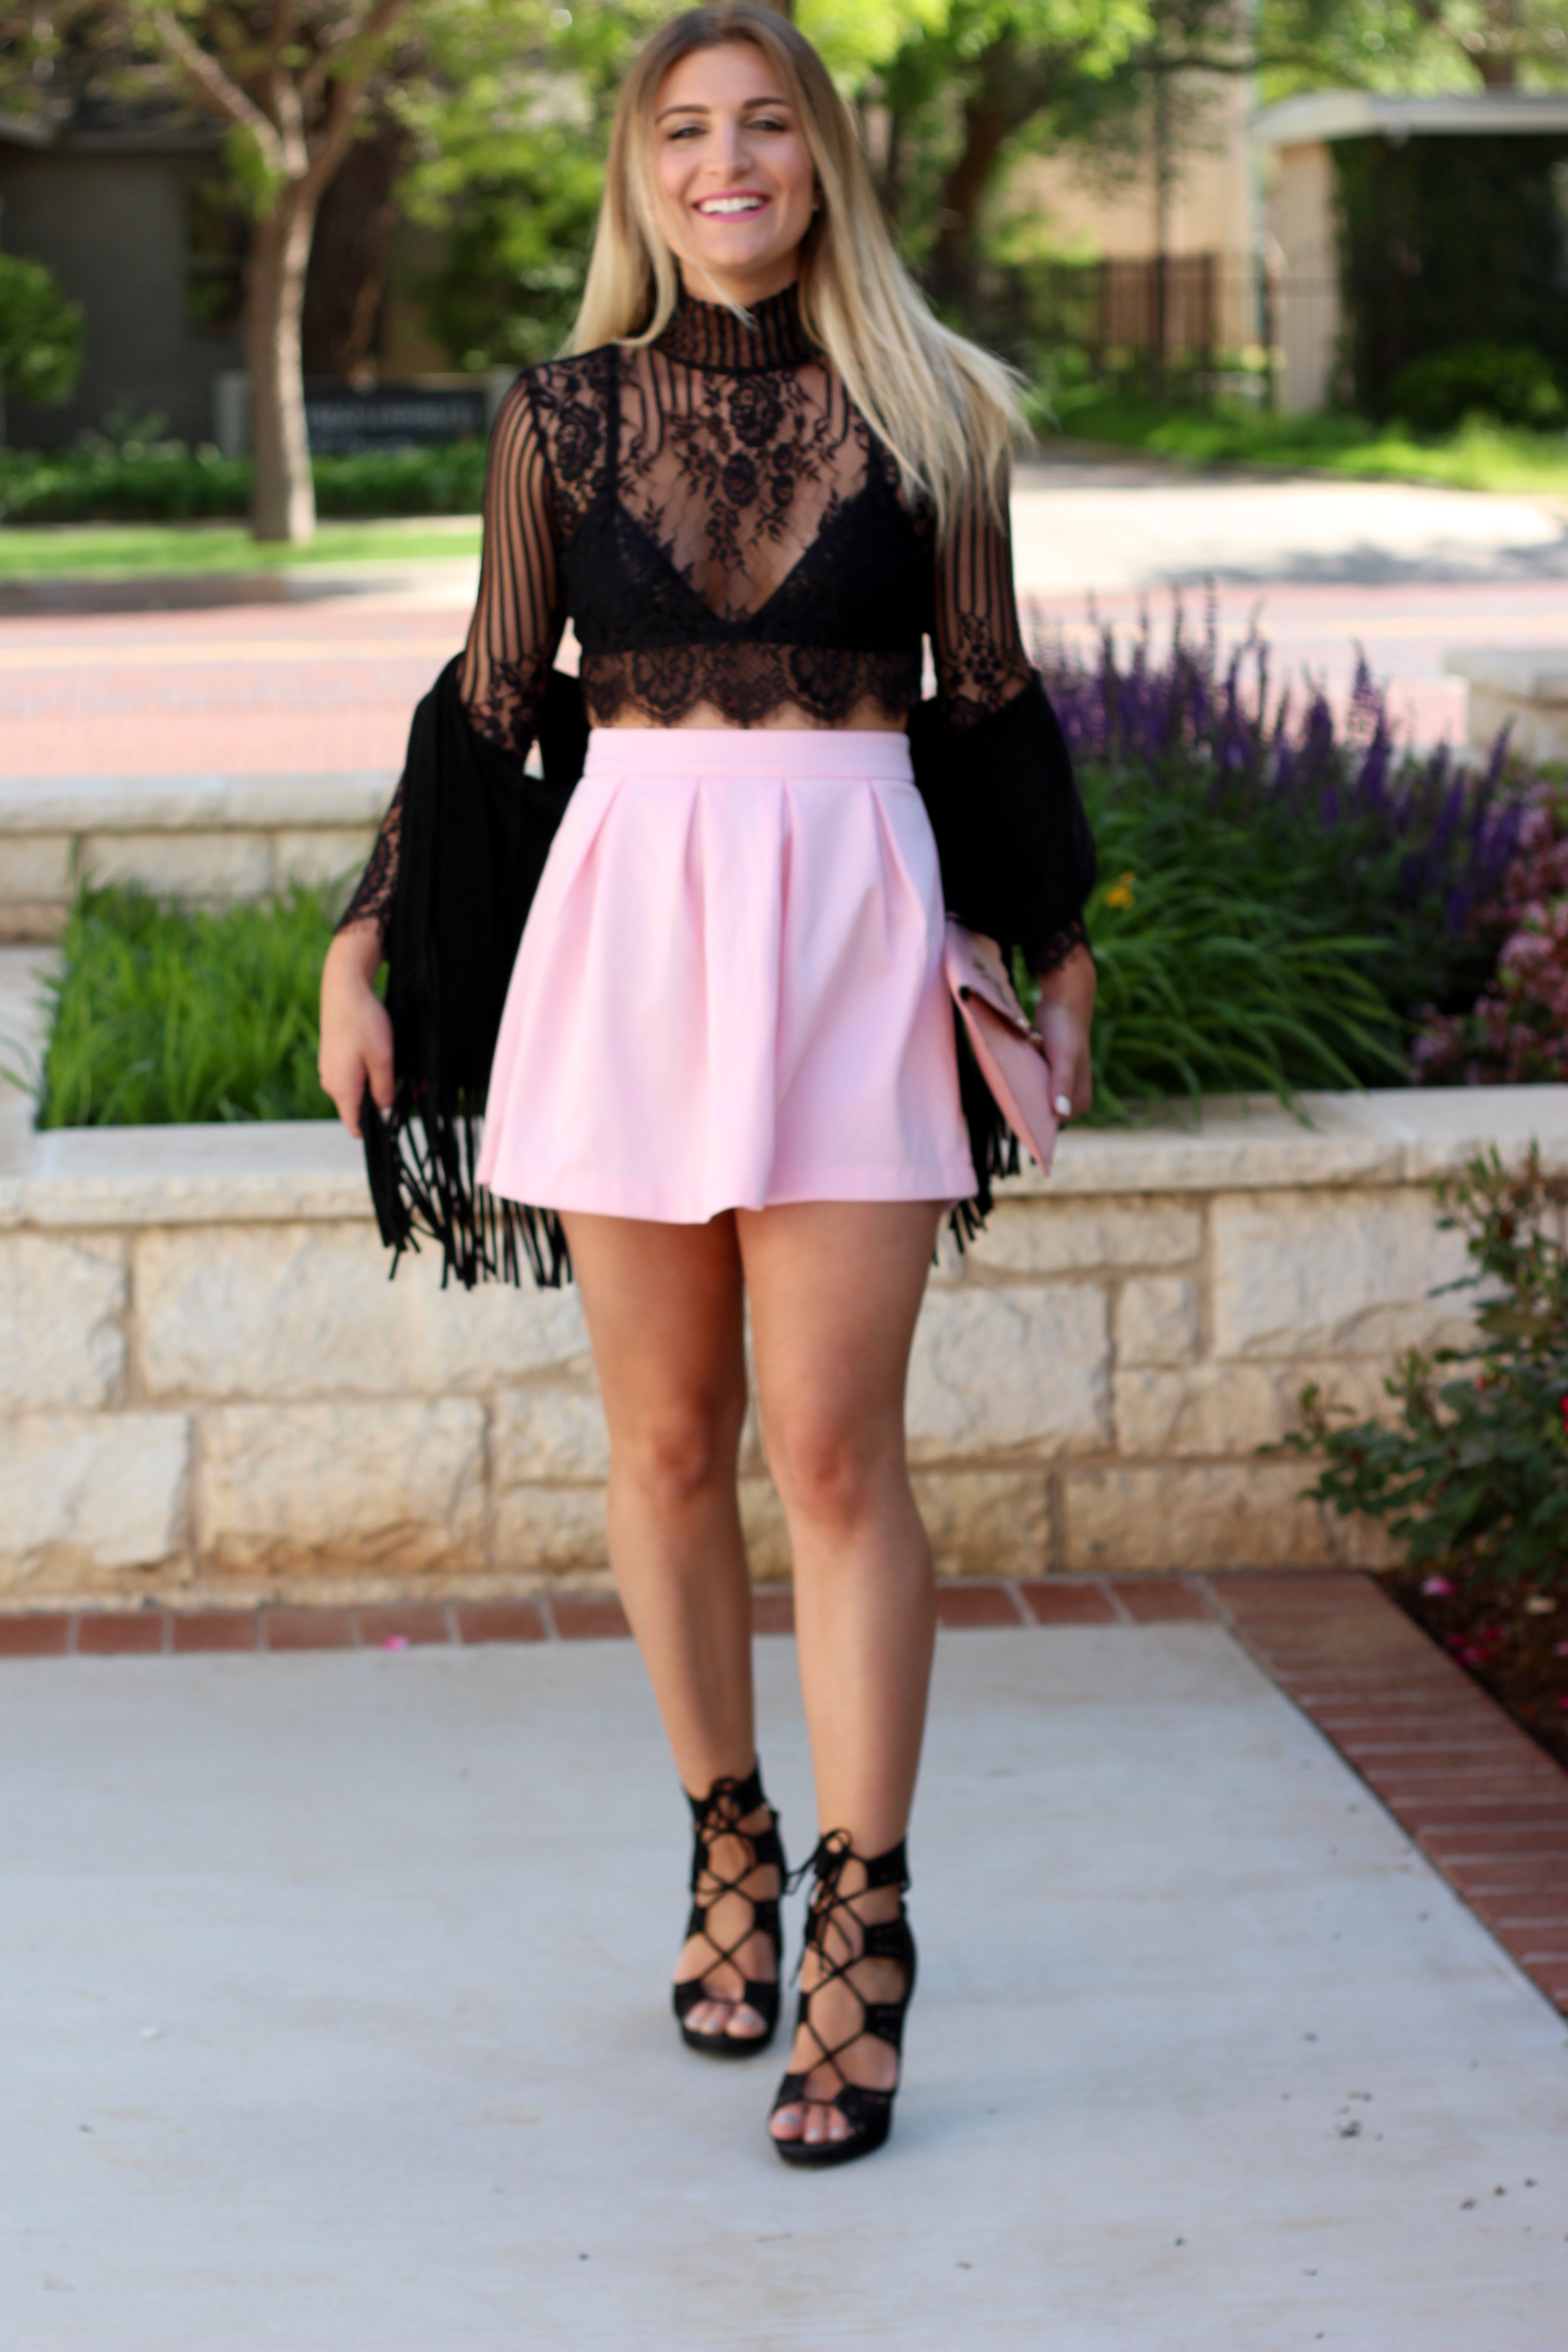 girly outfit for a girls day out